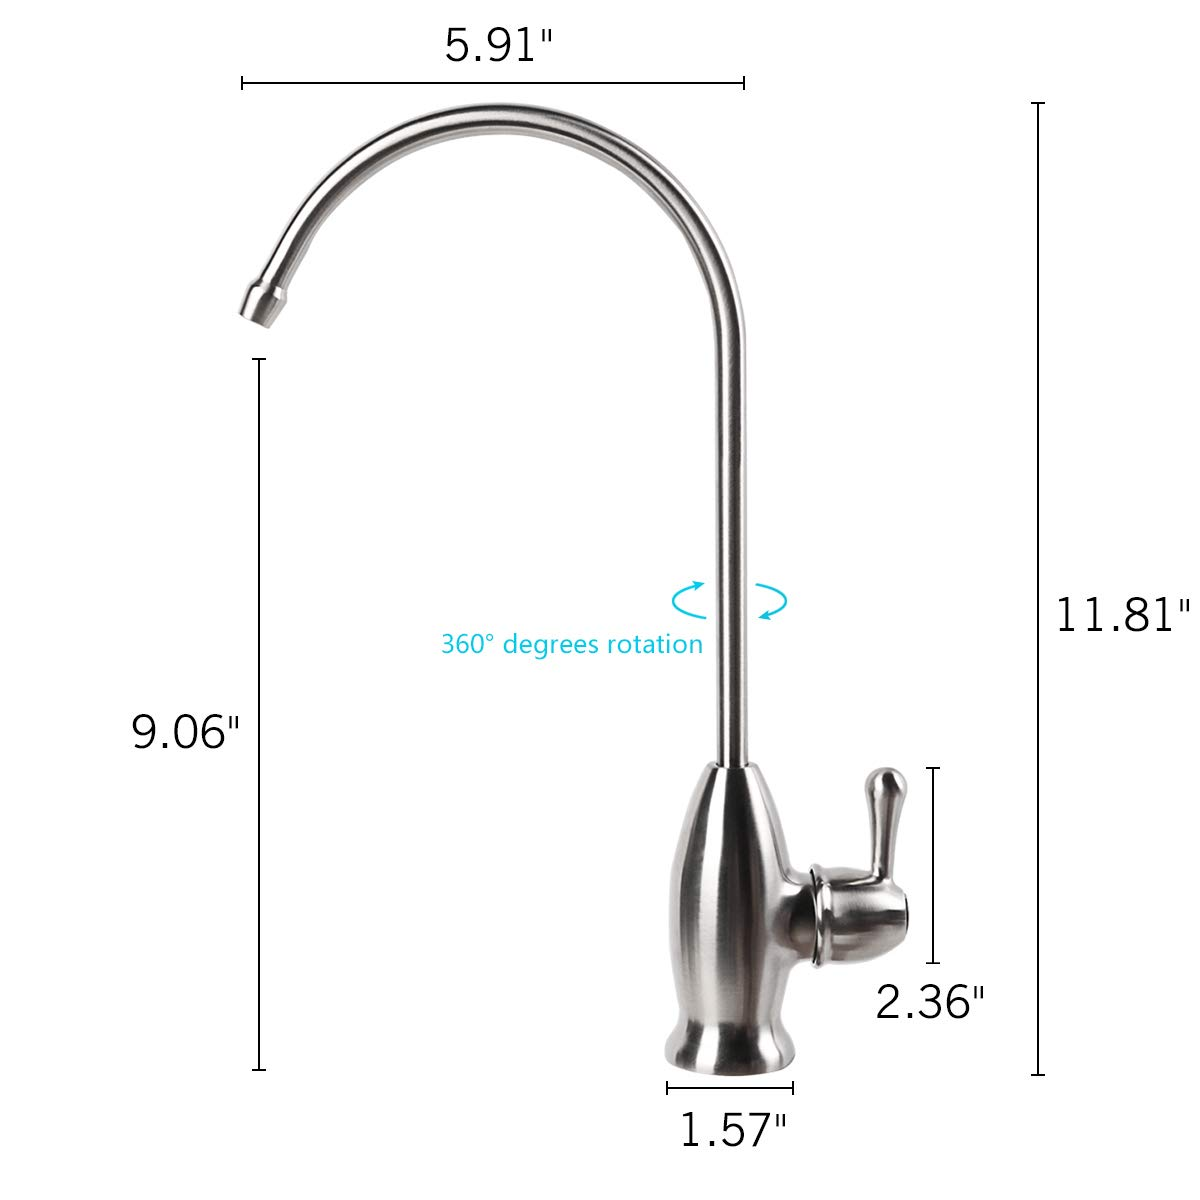 Skfirm Water Filter Faucet, Lead Free Stainless Steel Drinking Water Filter Faucet, Fits RO Water Filtration System, Brushed Nickel by Skfirm (Image #3)